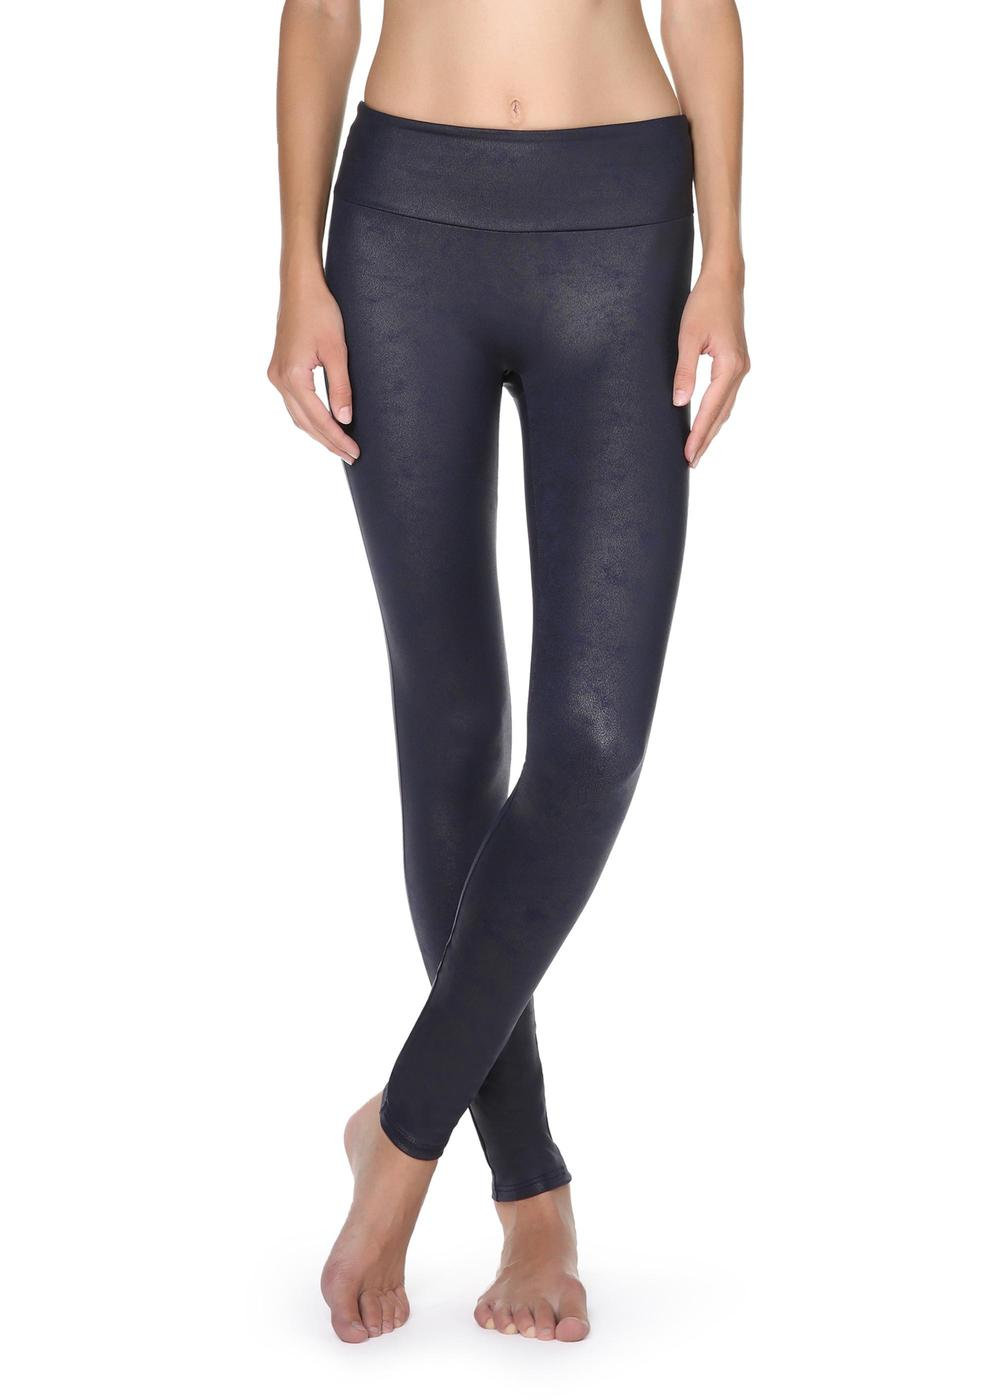 Total-Shaper-Leggings mit Leder-Effekt